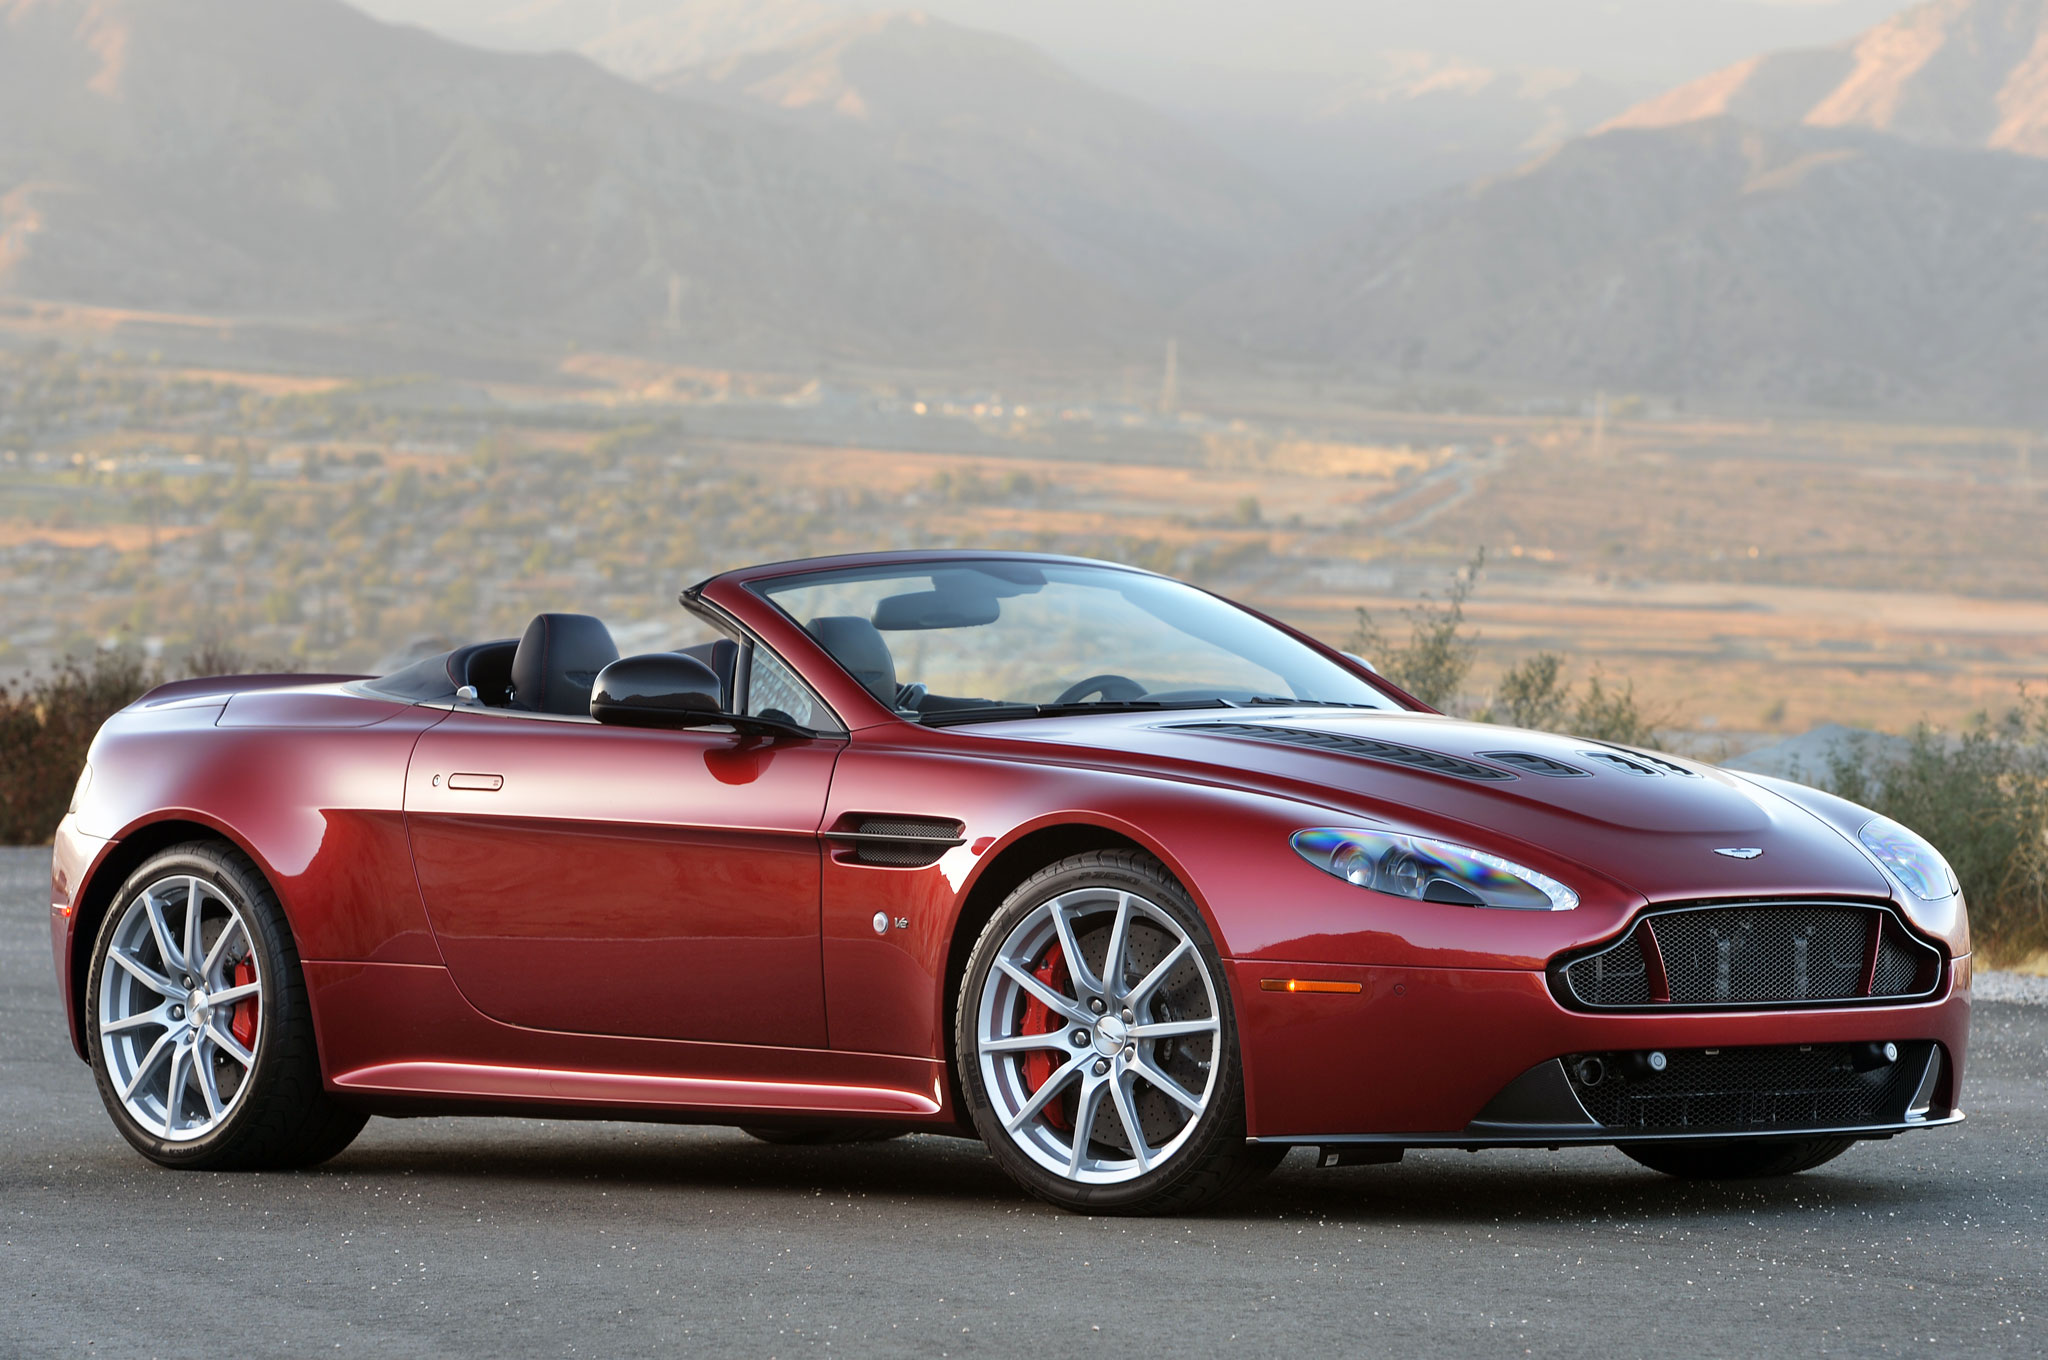 The 2017 Aston Martin V12 Vantage S Will Offer A 7-Speed